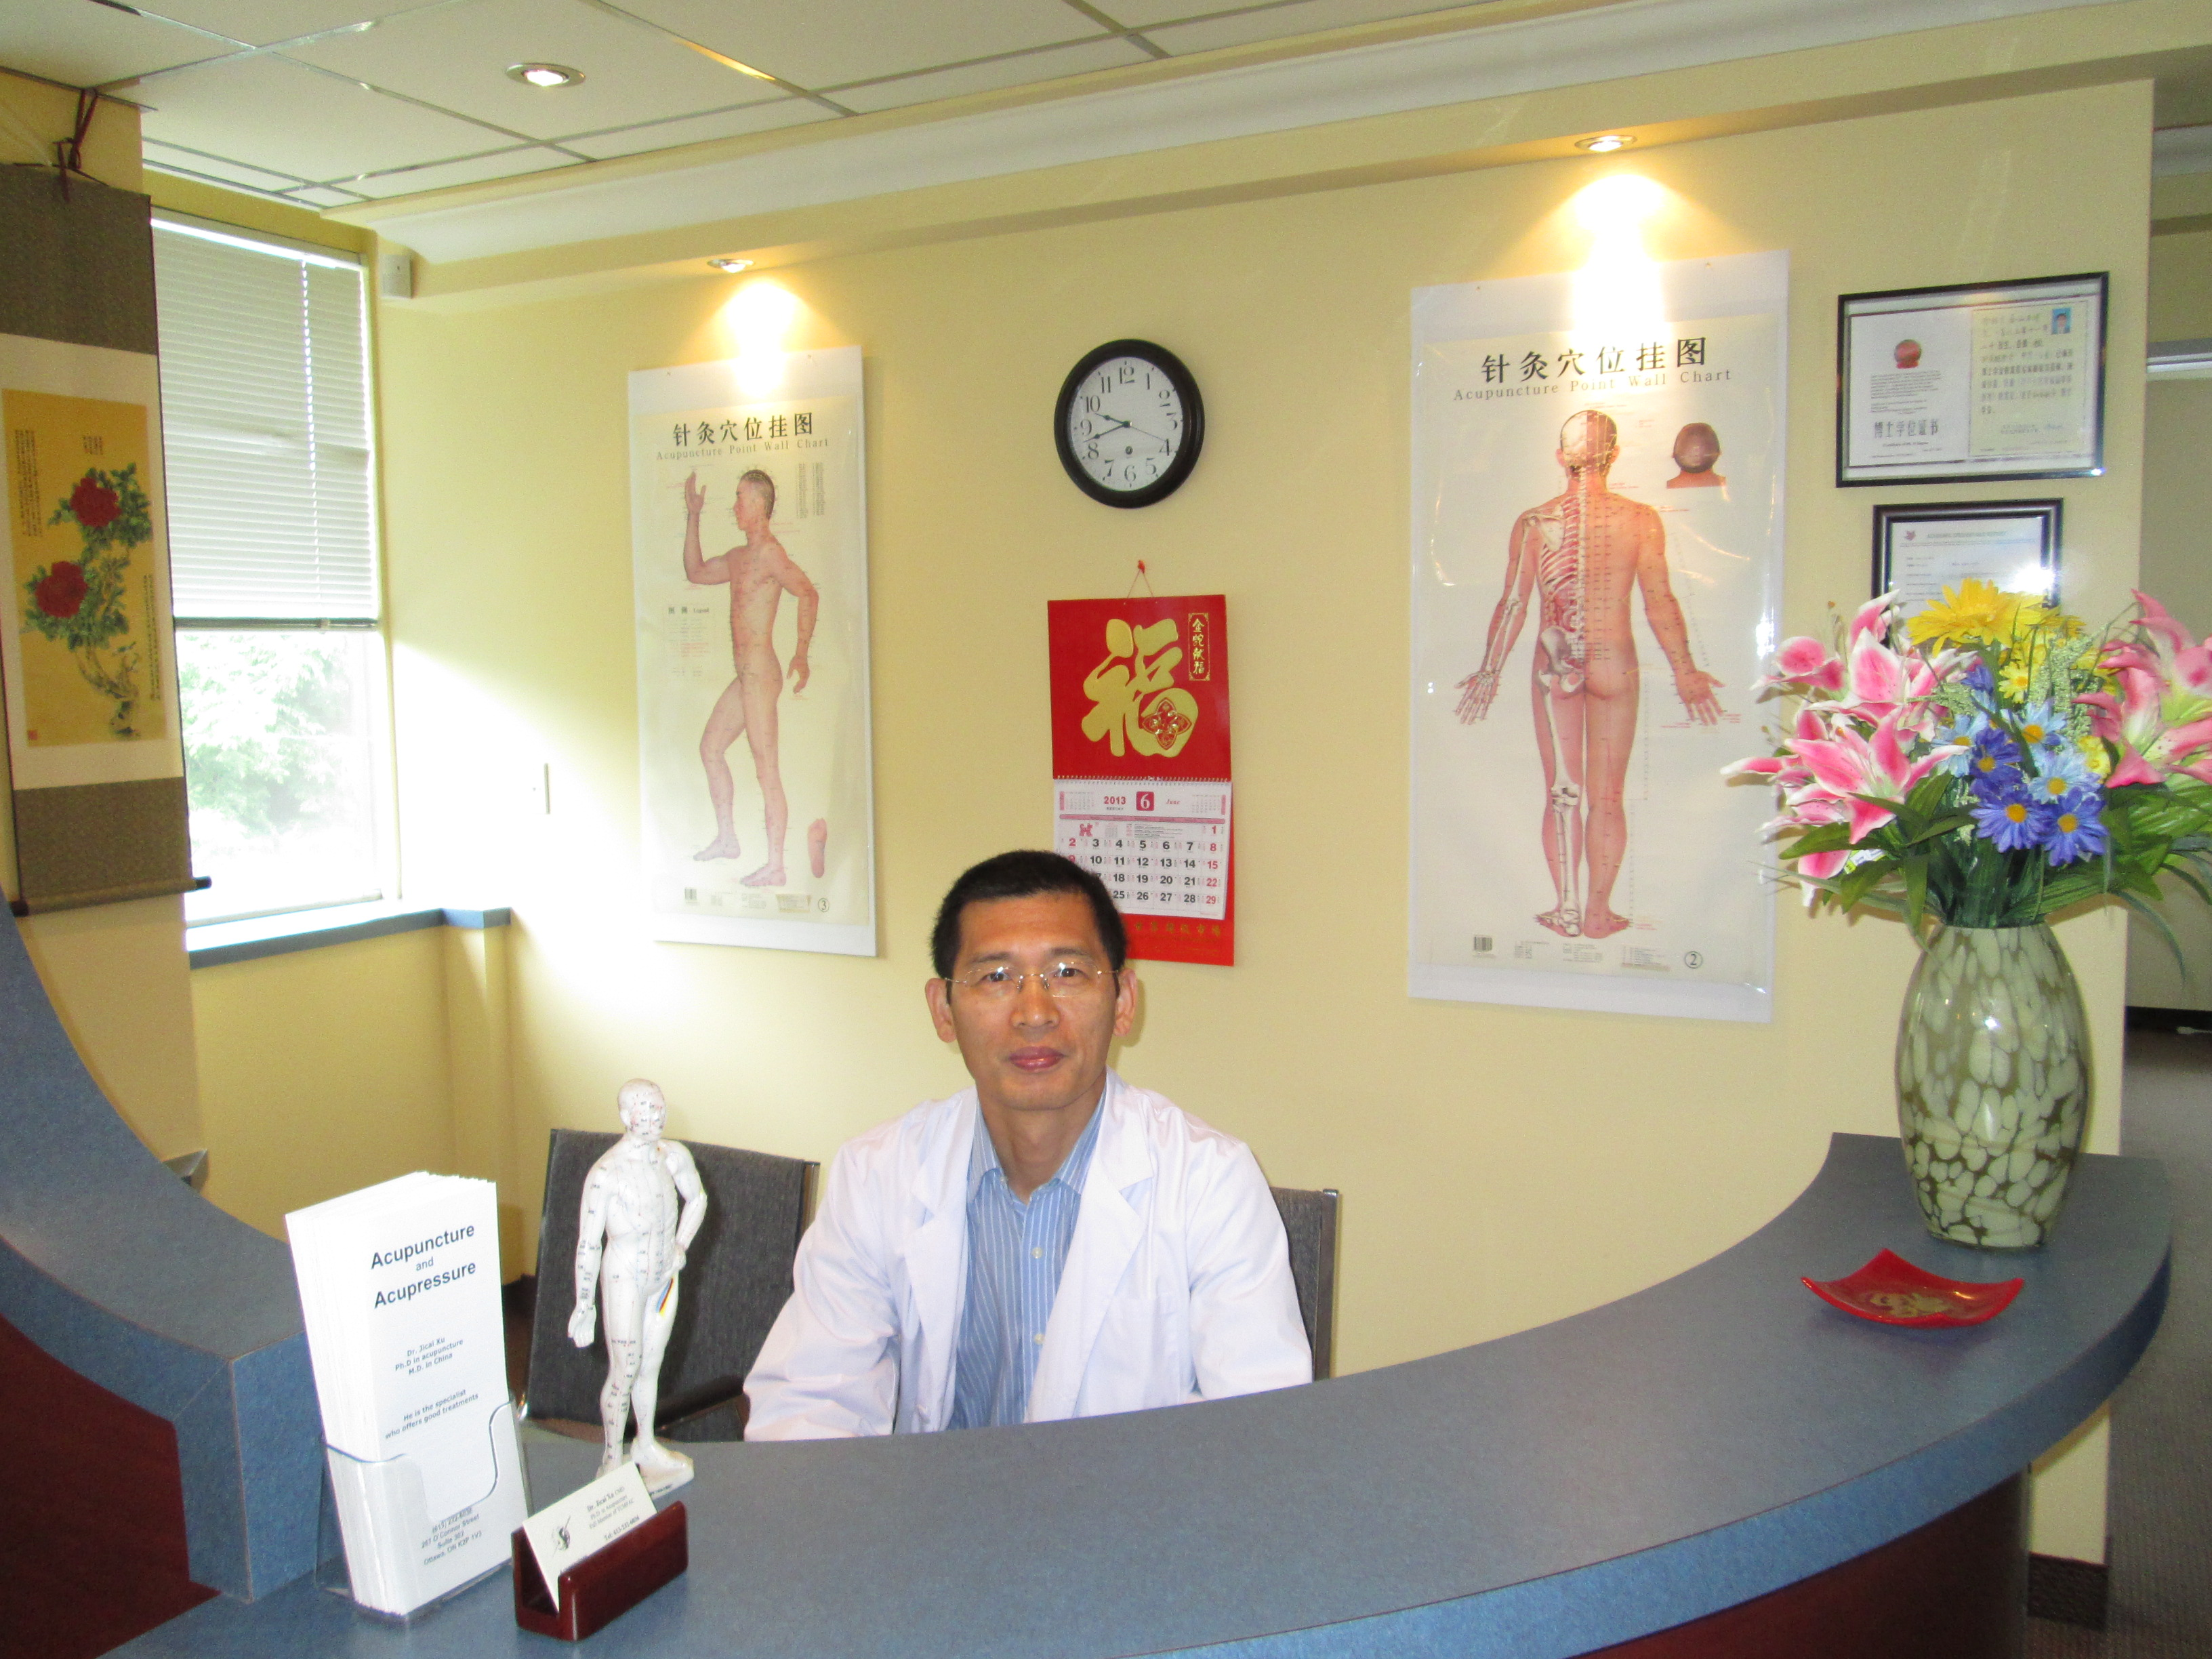 Practitioner Jicai Xu at Xu Acupuncture Ottawa